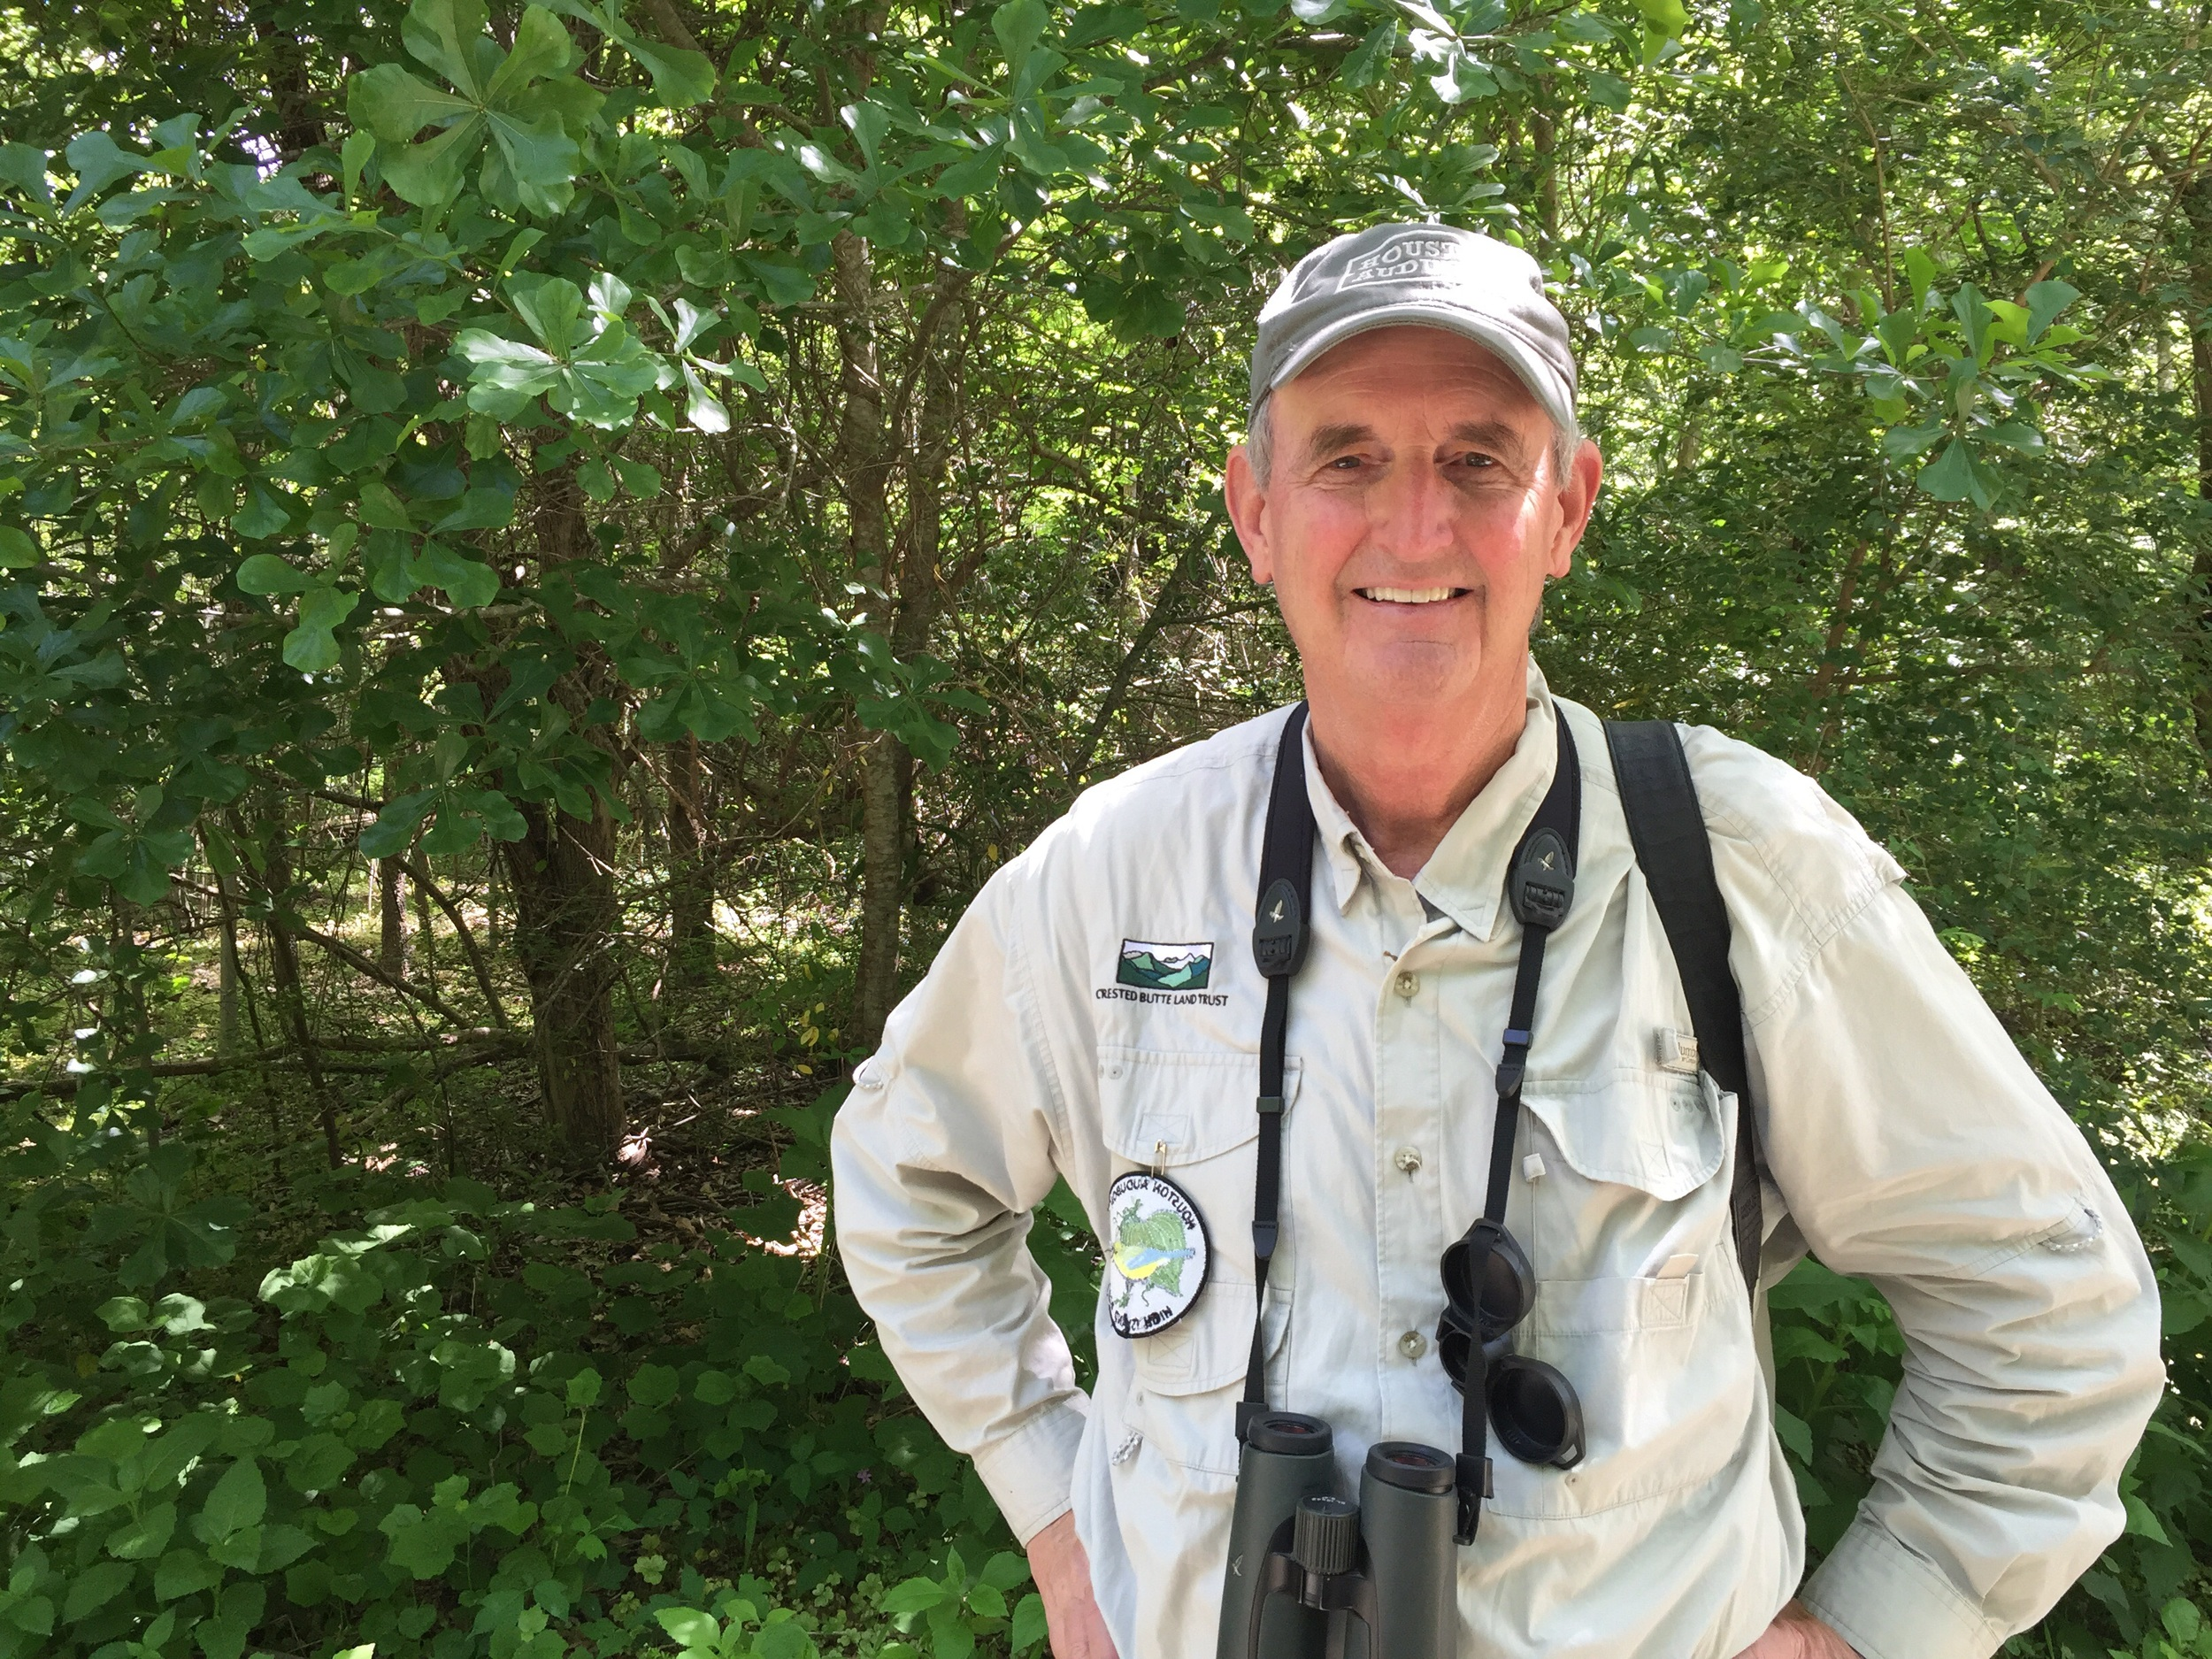 Ben has served in the past as President of Houston Audubon and is passionate about High Island